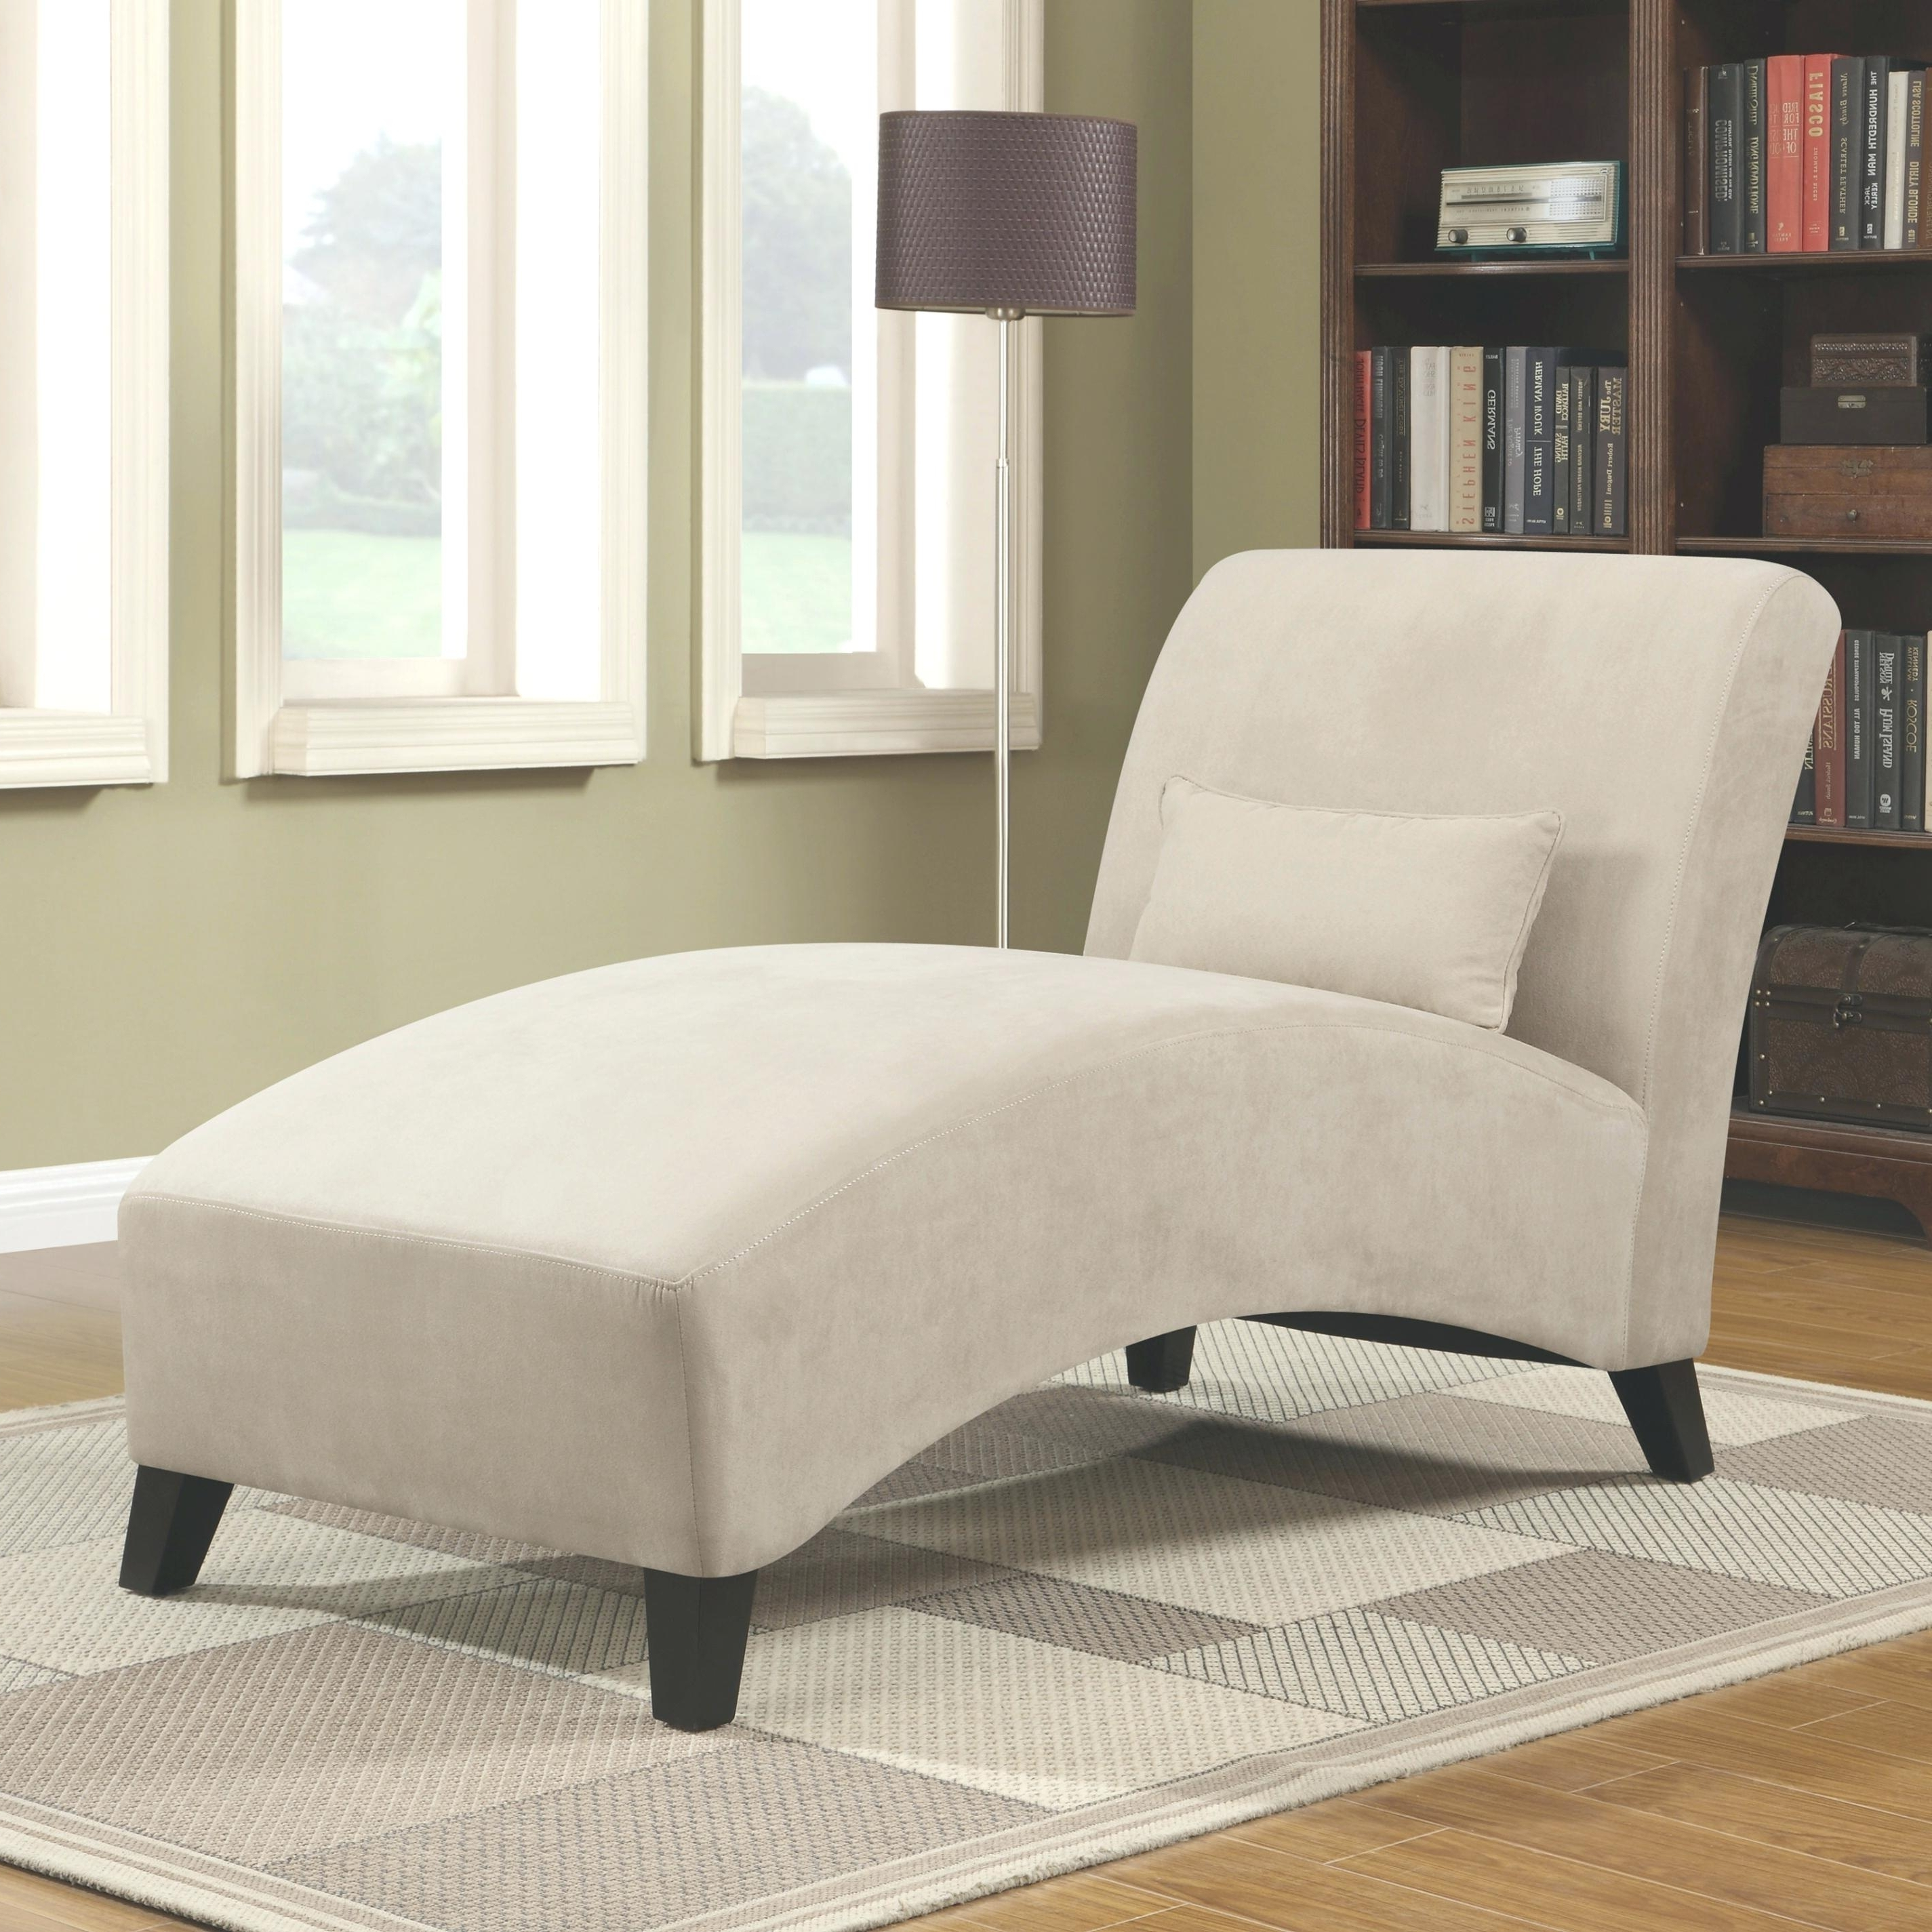 Famous Covers For Chaise Lounge Chair In Cover For Chaise Lounge Chair • Lounge Chairs Ideas (View 9 of 15)